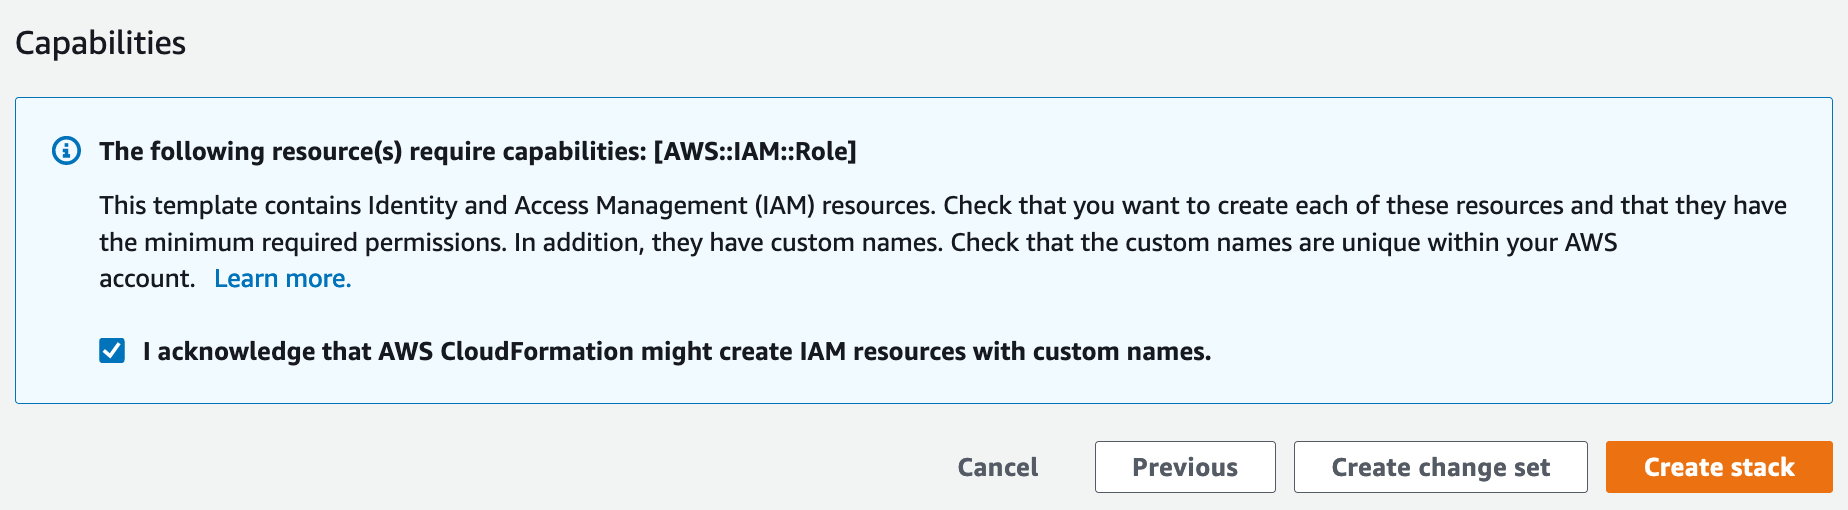 _images/RiskManager_IAM_Acknowledgement.png